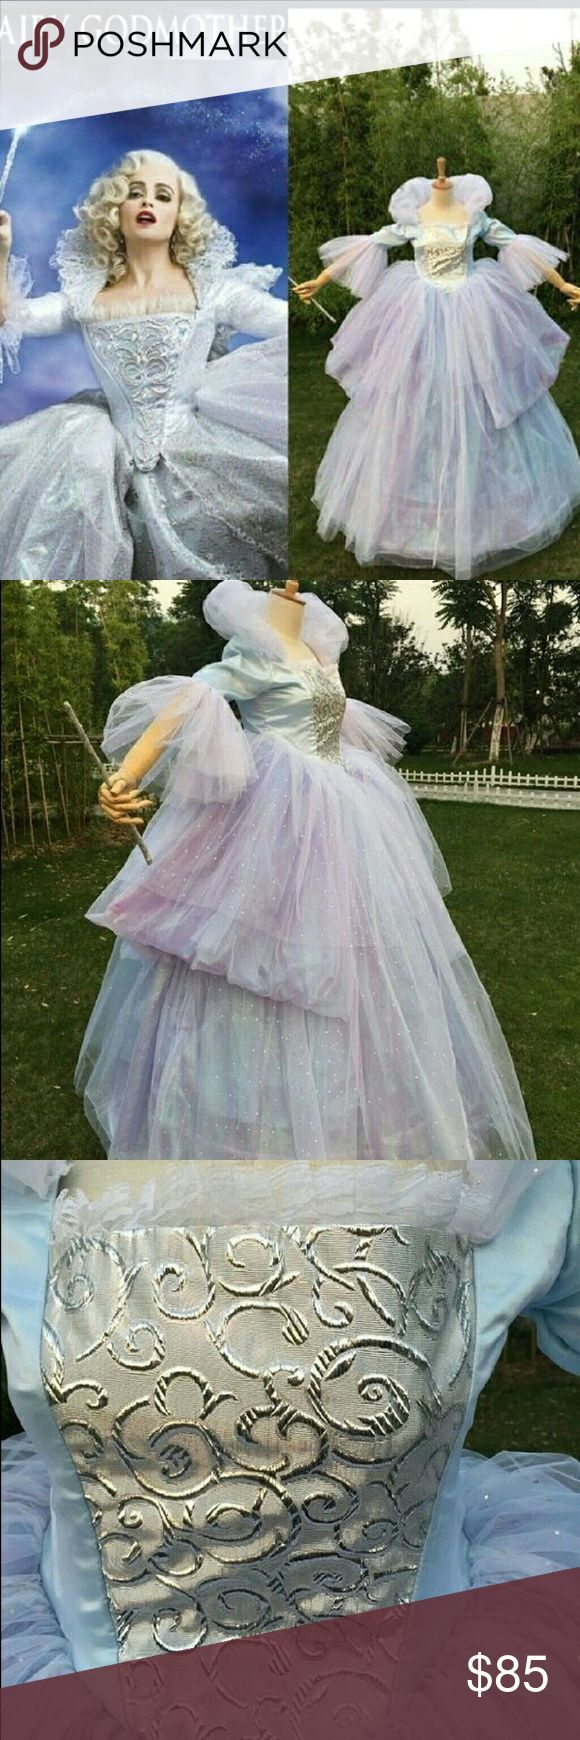 Fairy Godmother Costume GORGEOUS fairy godmother costume. Worn only a few times.  Size medium.  Fits true to size. Dresses